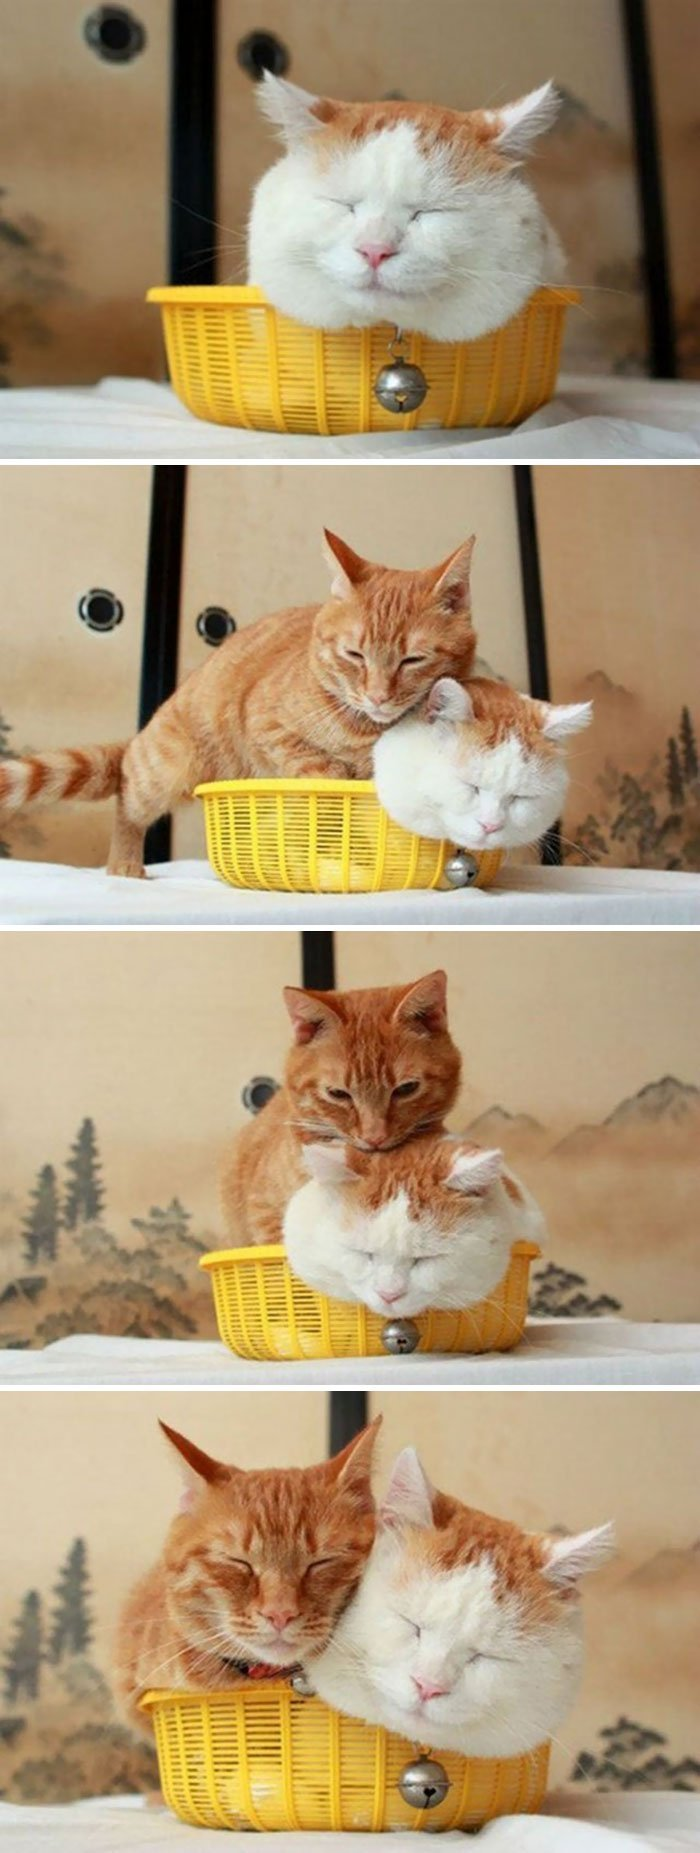 15 photos proves cats life motto fits sits if it fits i sits 9 172 598329b67adba  700 - 15 photos that proves cat